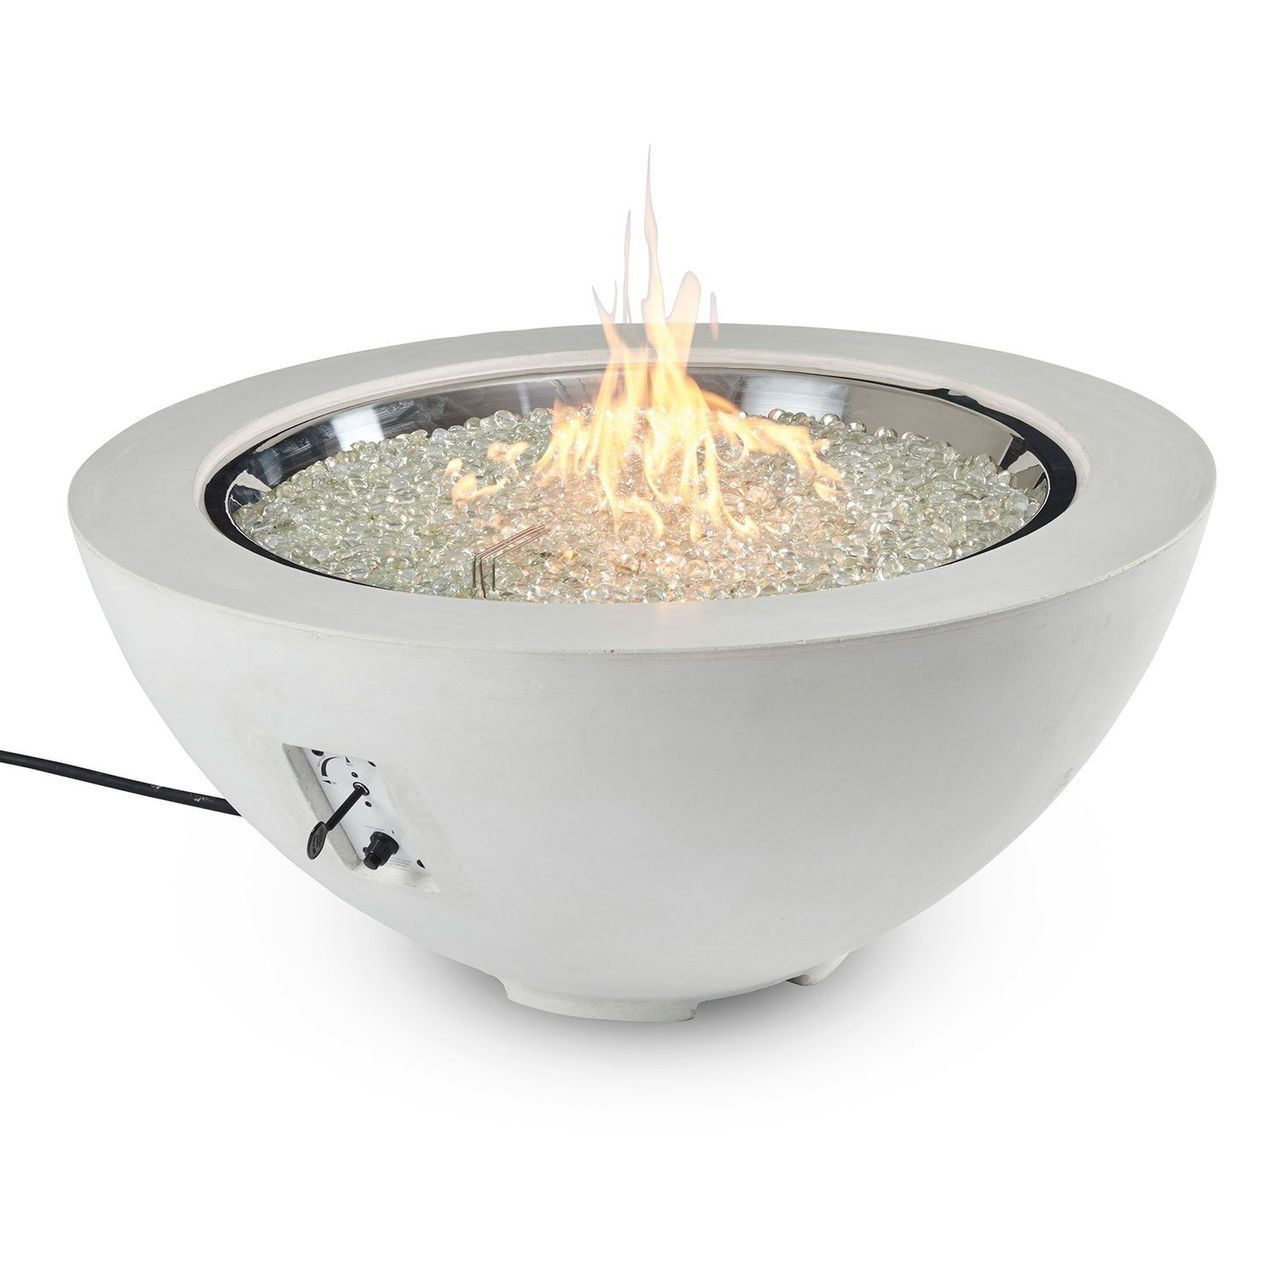 "Outdoor GreatRoom 42"" Cove Round Gas Fire Pit Bowl - White"